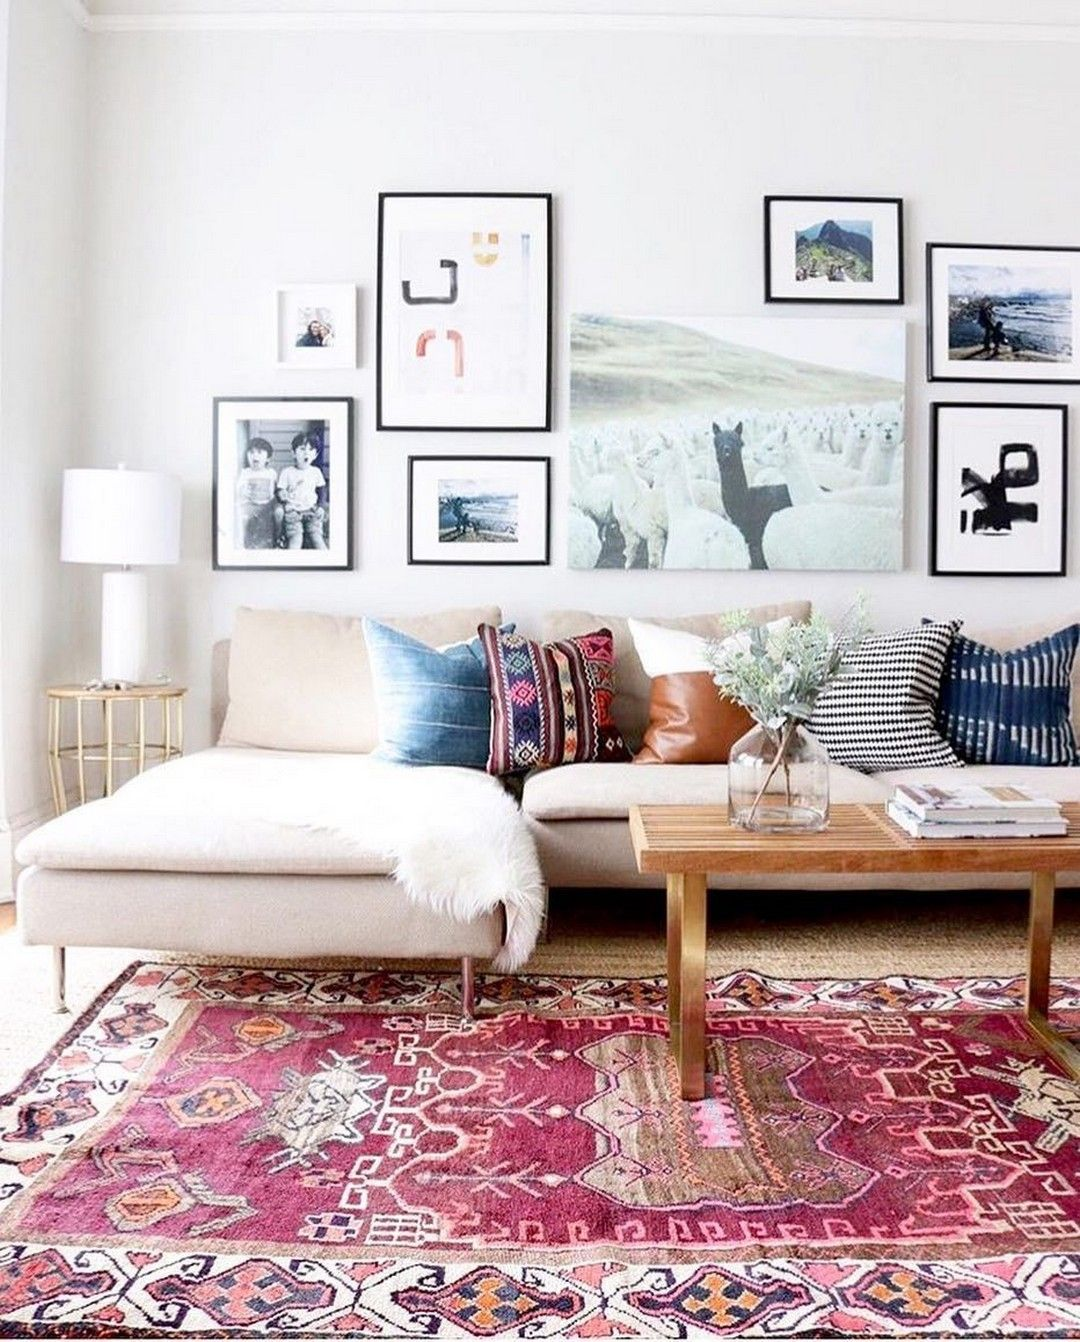 30+ CLEVER WAYS TO DECORATE YOUR LIVING ROOM WITH HIPSTER IDEAS images